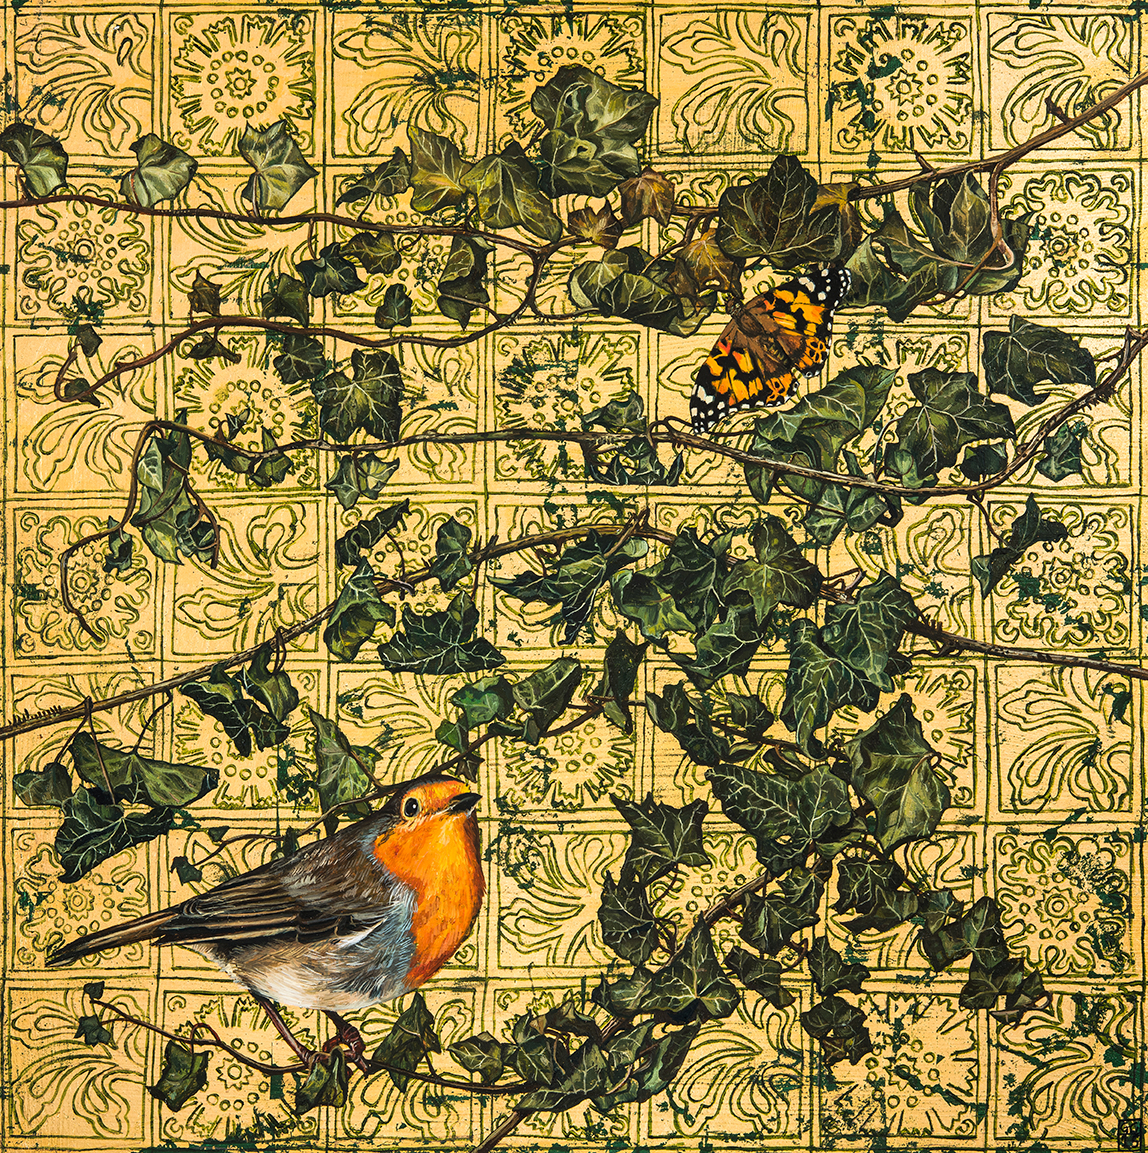 'Robin and Painted Lady', Oil and gold leaf on board, 30cm x30cm, 2015, SOLD